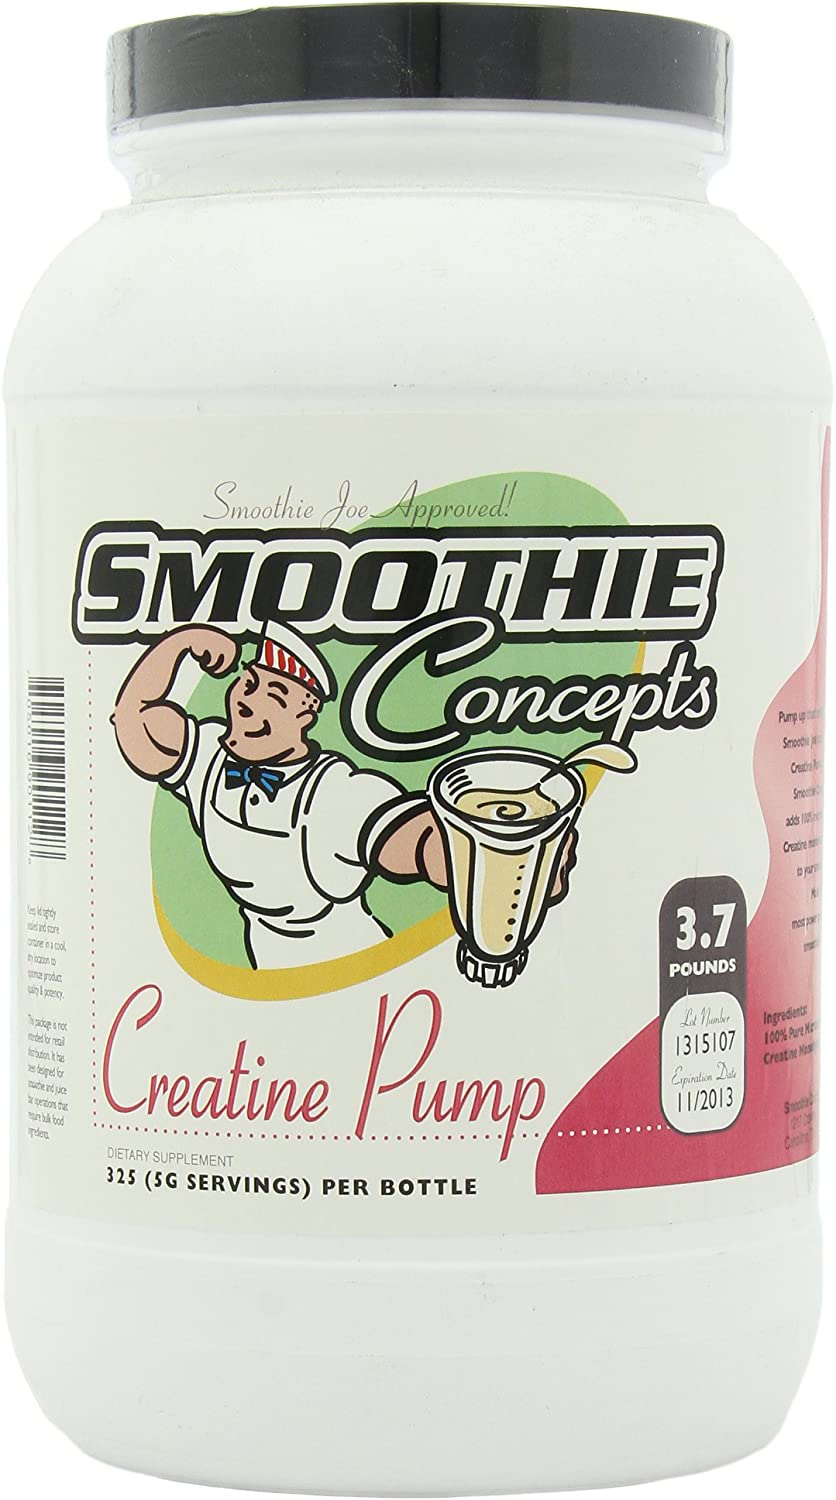 Smoothie Concepts Very popular High quality Creatine 325-Servings Pump 3.7-Pounds